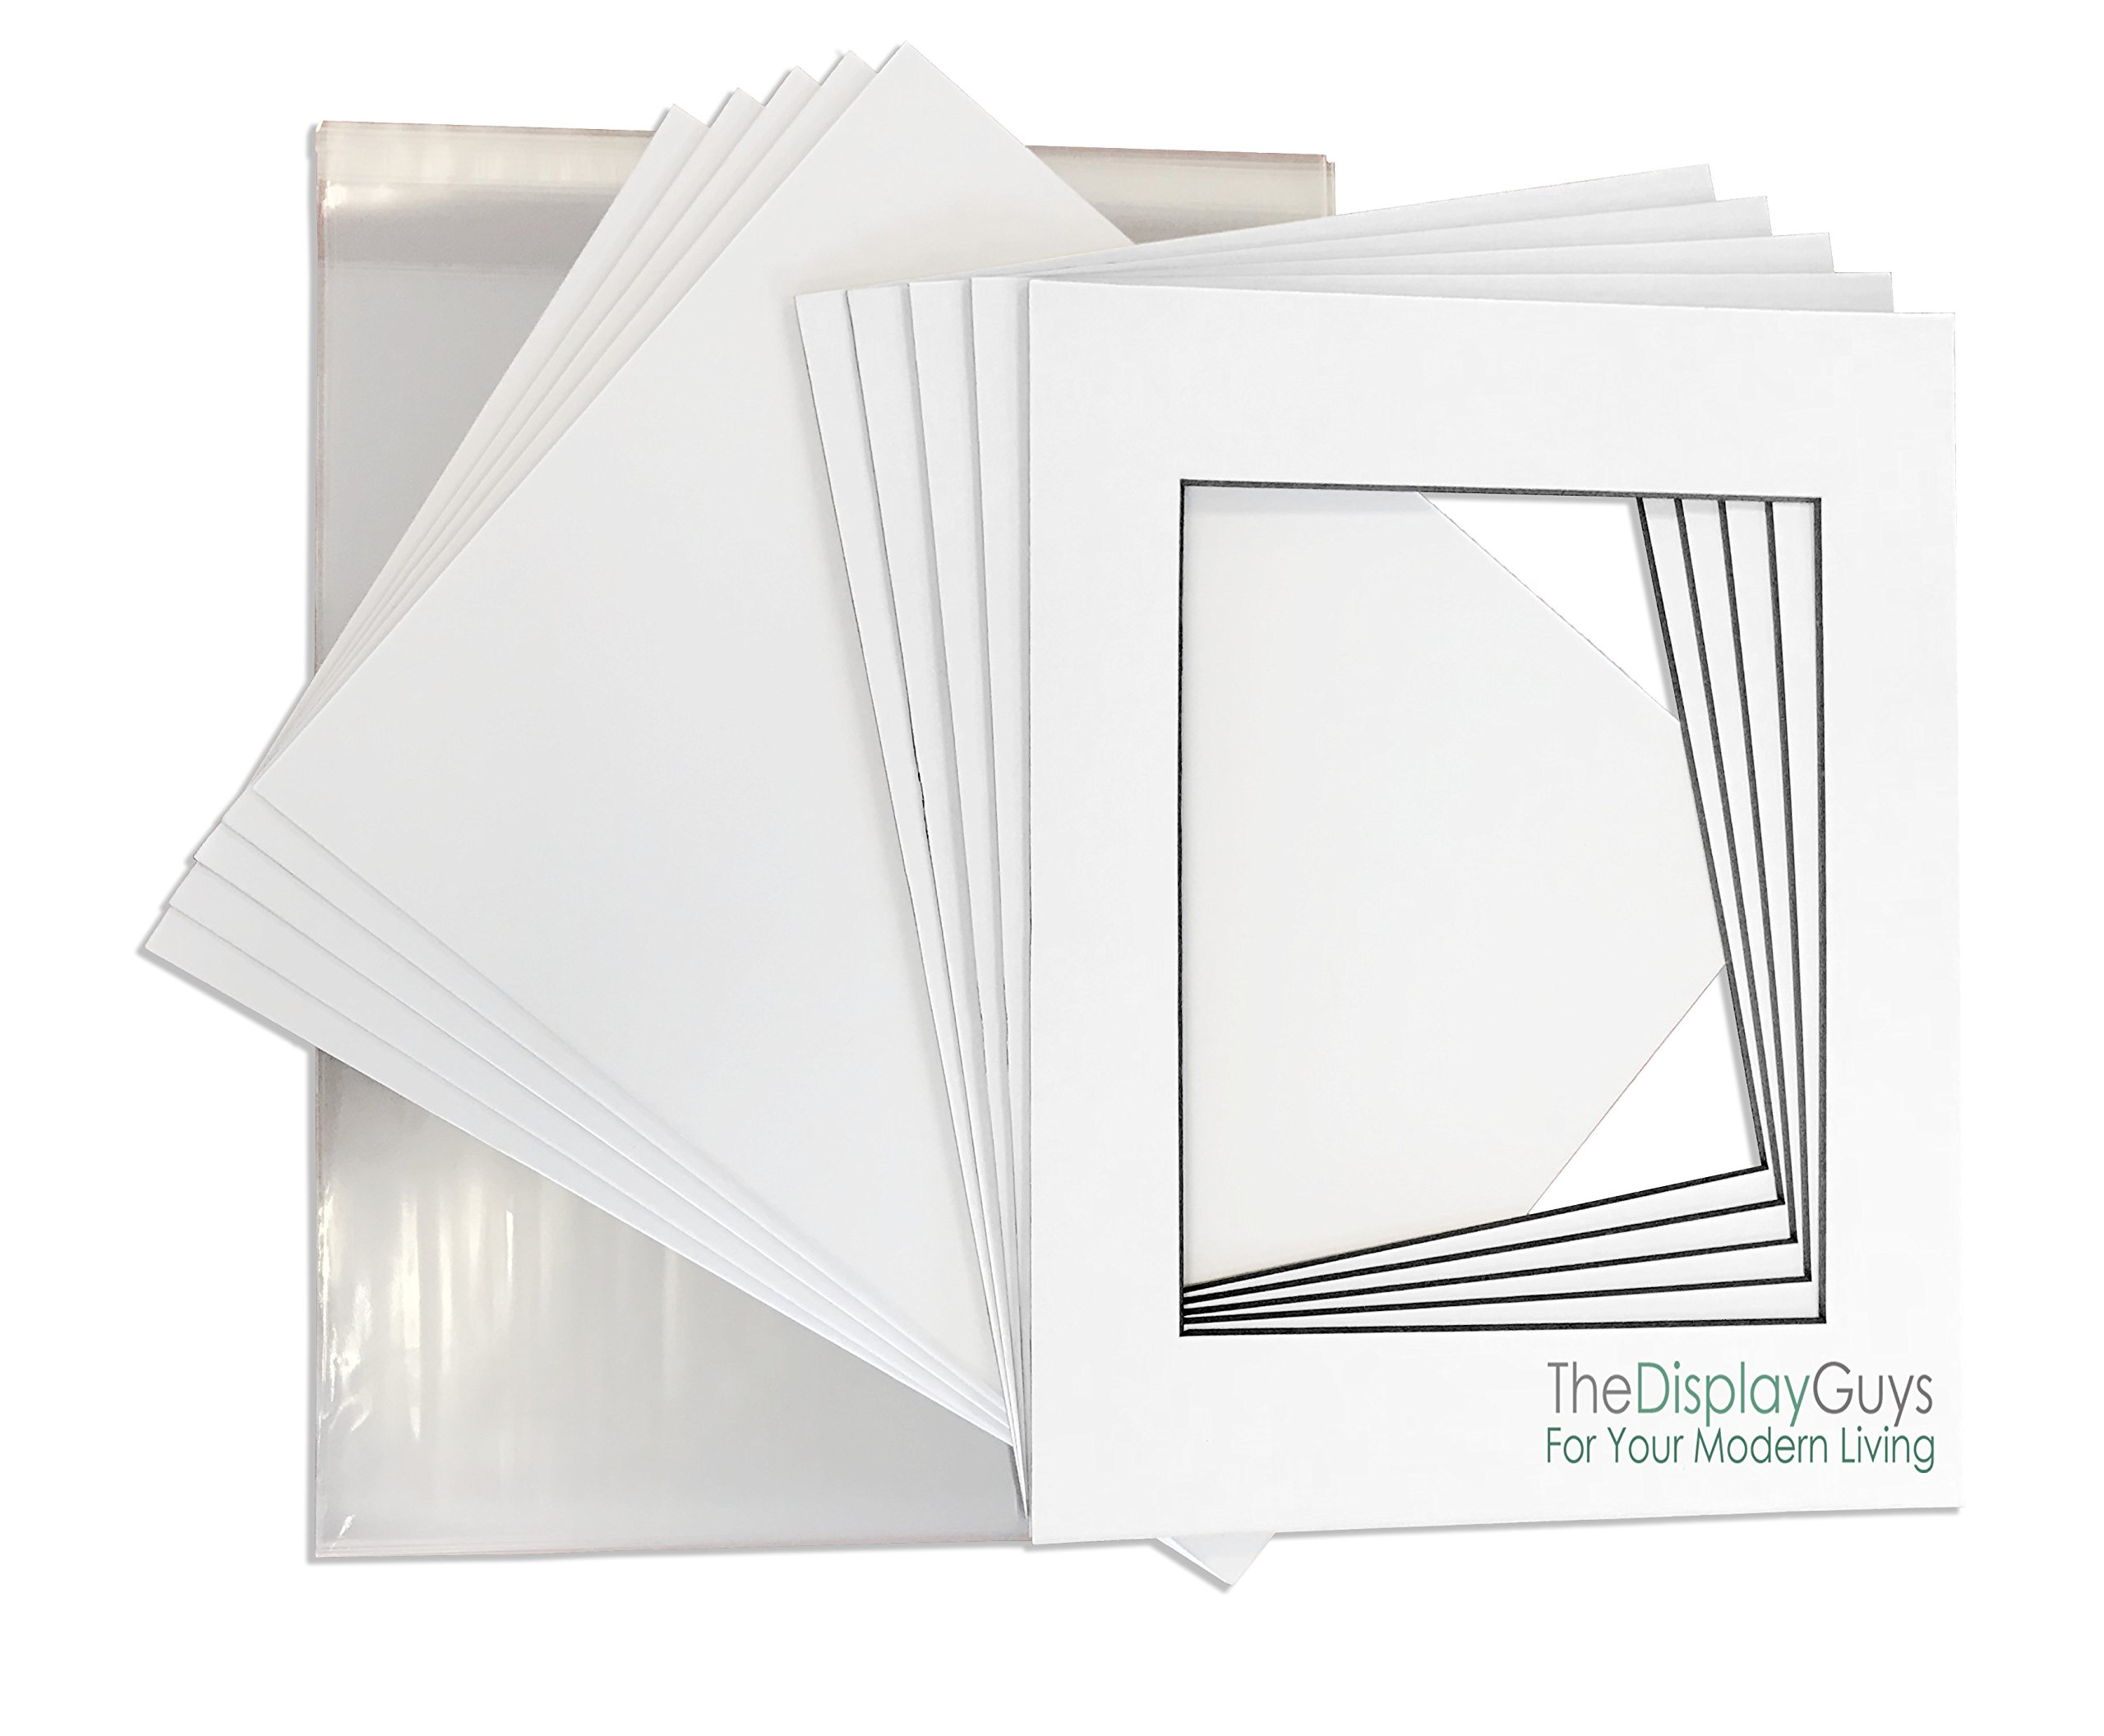 THE DISPLAY GUYS Professional 11x14 Pack of 25 Deluxe White w/Black Core Picture Photo Matting Mat Boards + Backing Boards + Clear Plastic Bags Complete Set